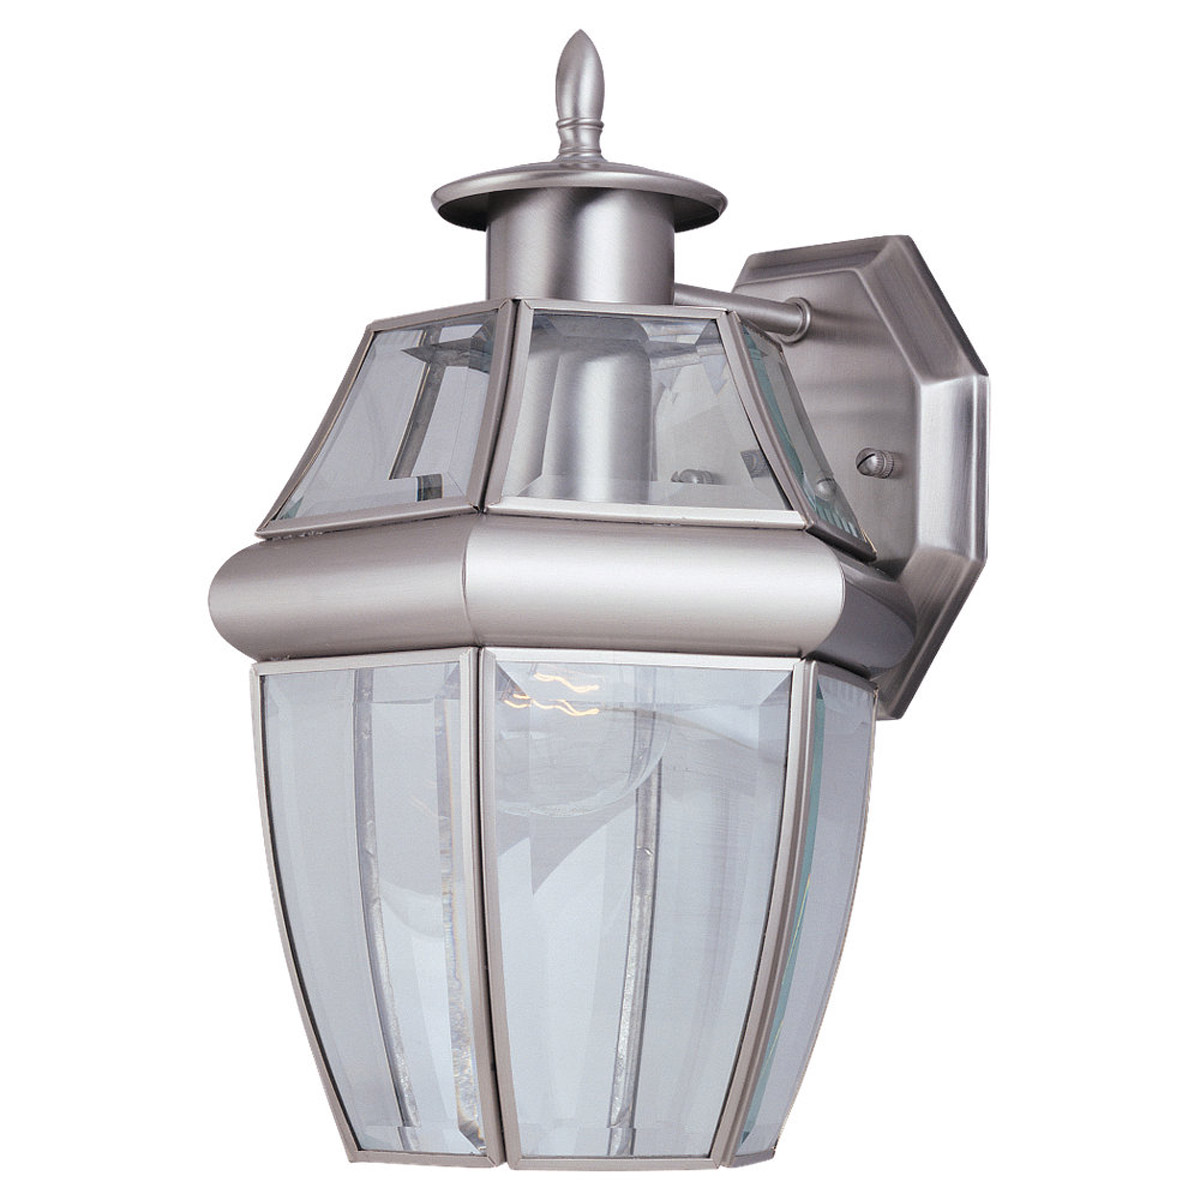 Sea Gull Lighting Lancaster 1 Light Outdoor Wall Lantern in Antique Brushed Nickel 8038-965